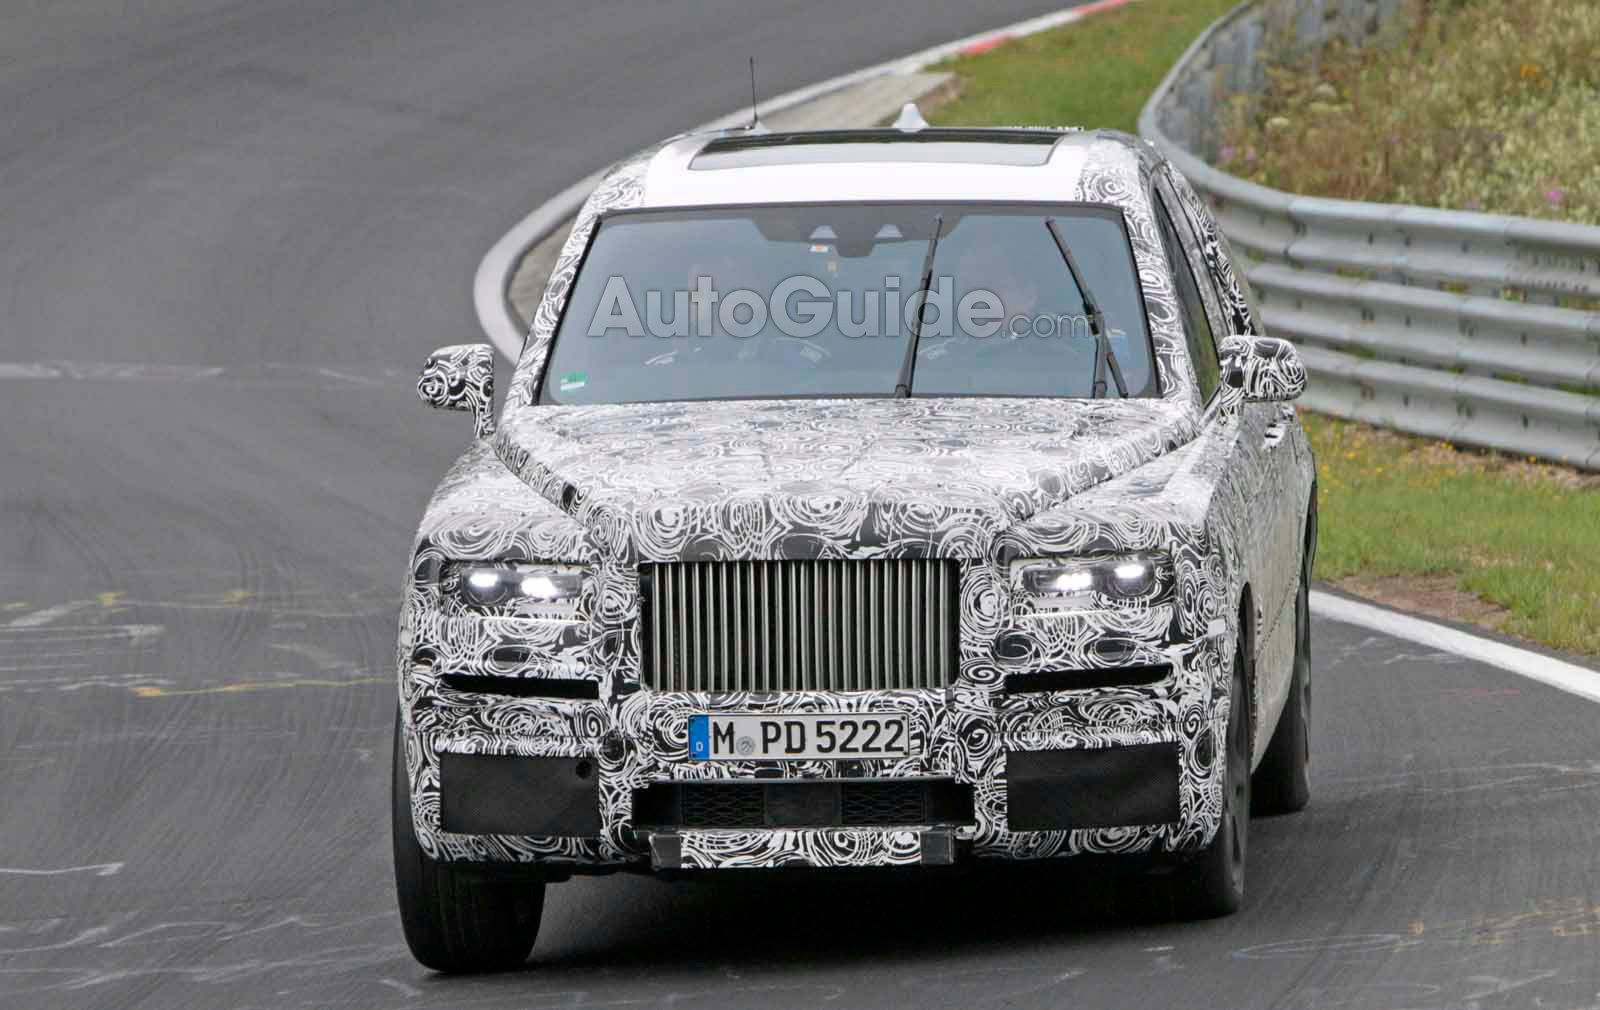 Rolls-Royce Phantom - eighth-gen model debuts